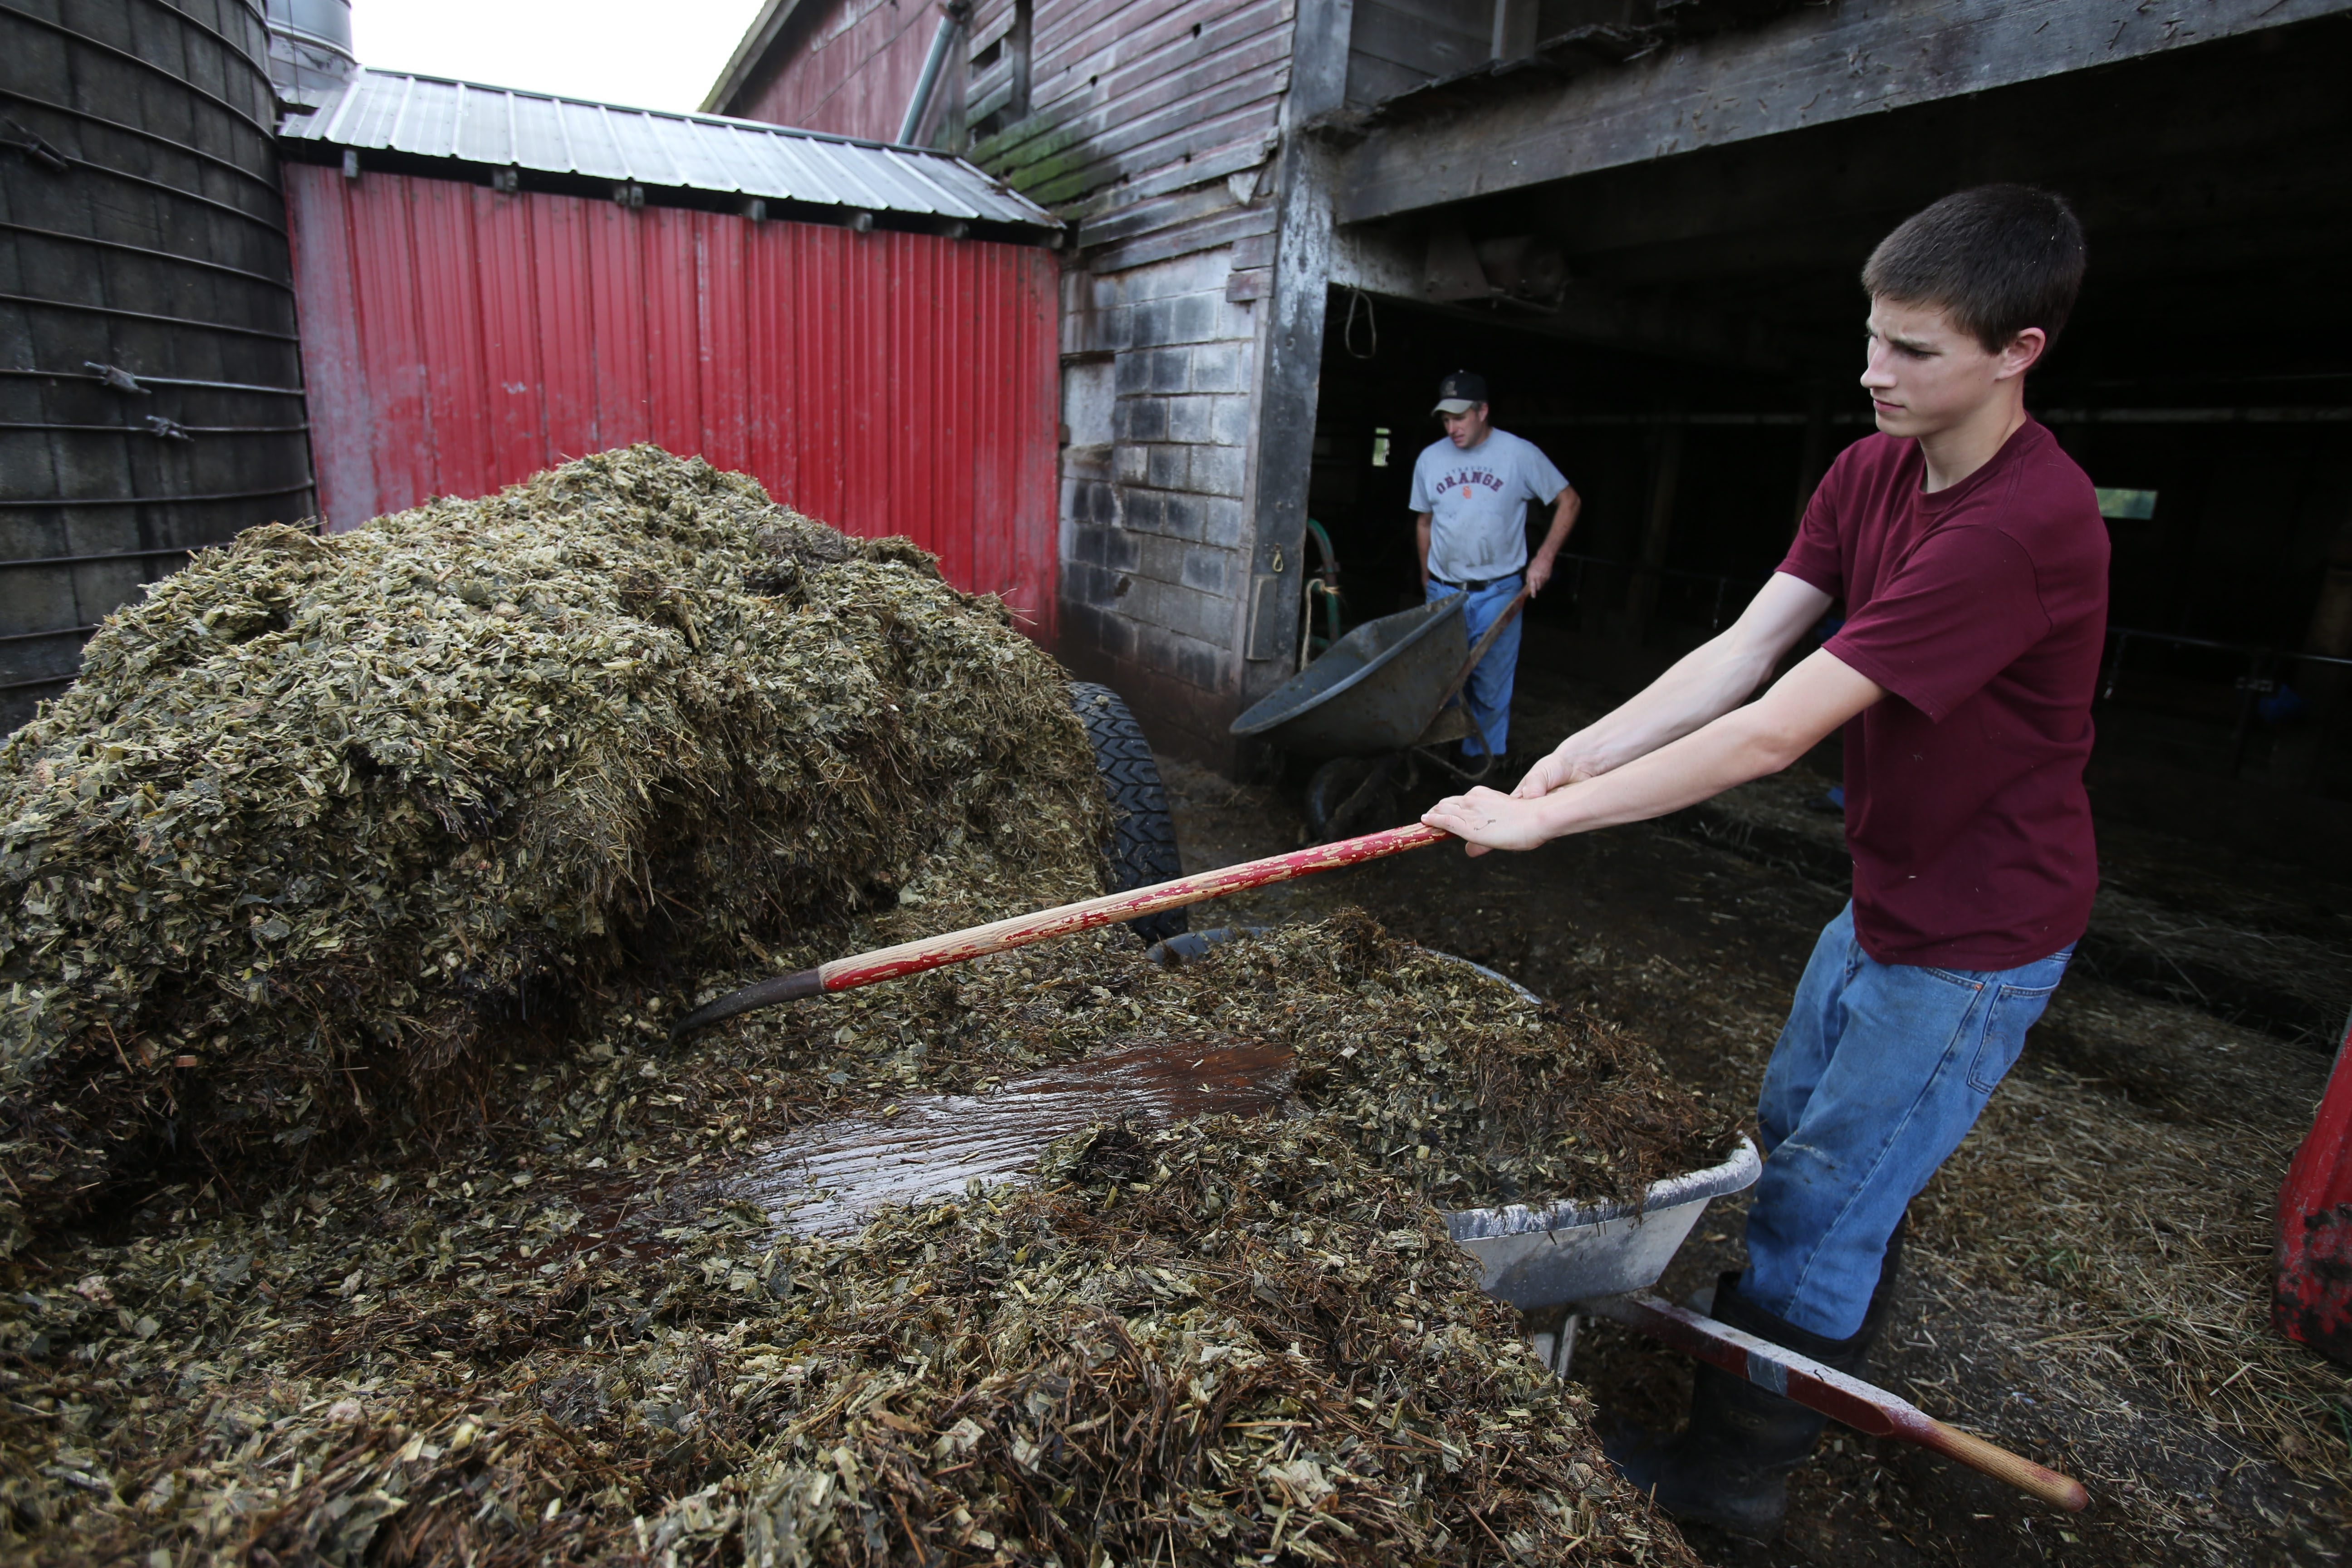 Christopher Sweeney, 16, right, and his father, John, load feed for the cows at the family's Maple View Dairy in Appleton.